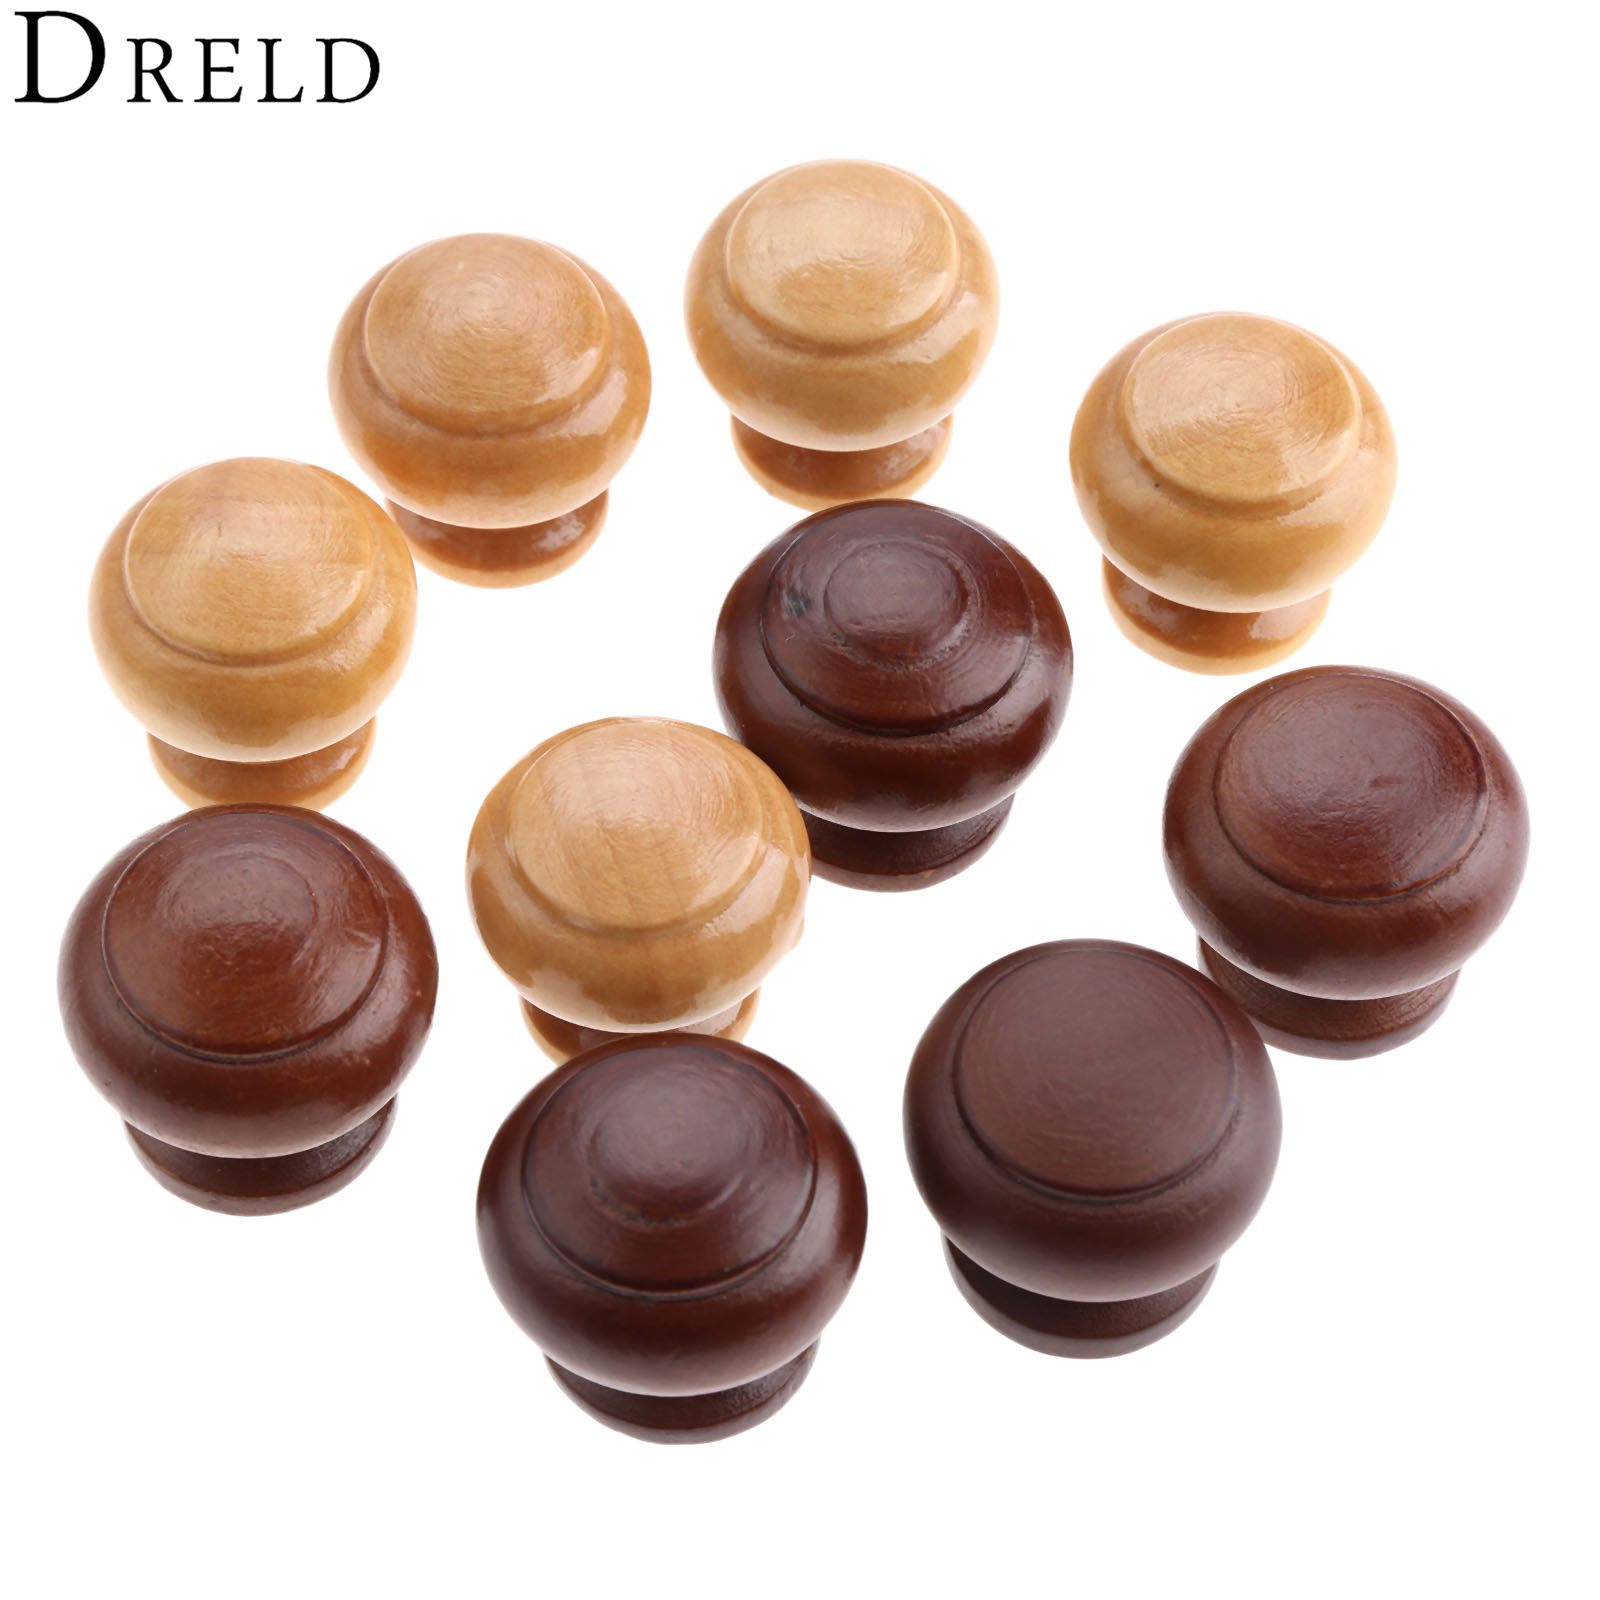 DRELD 5Pcs Wooden Kitchen Drawer Cabinet Knobs and Handles Closet Cupboard Furniture Handles Door Wood Pulls Furniture Hardware antique european furniture handles cabinet handle door drawer circular copper